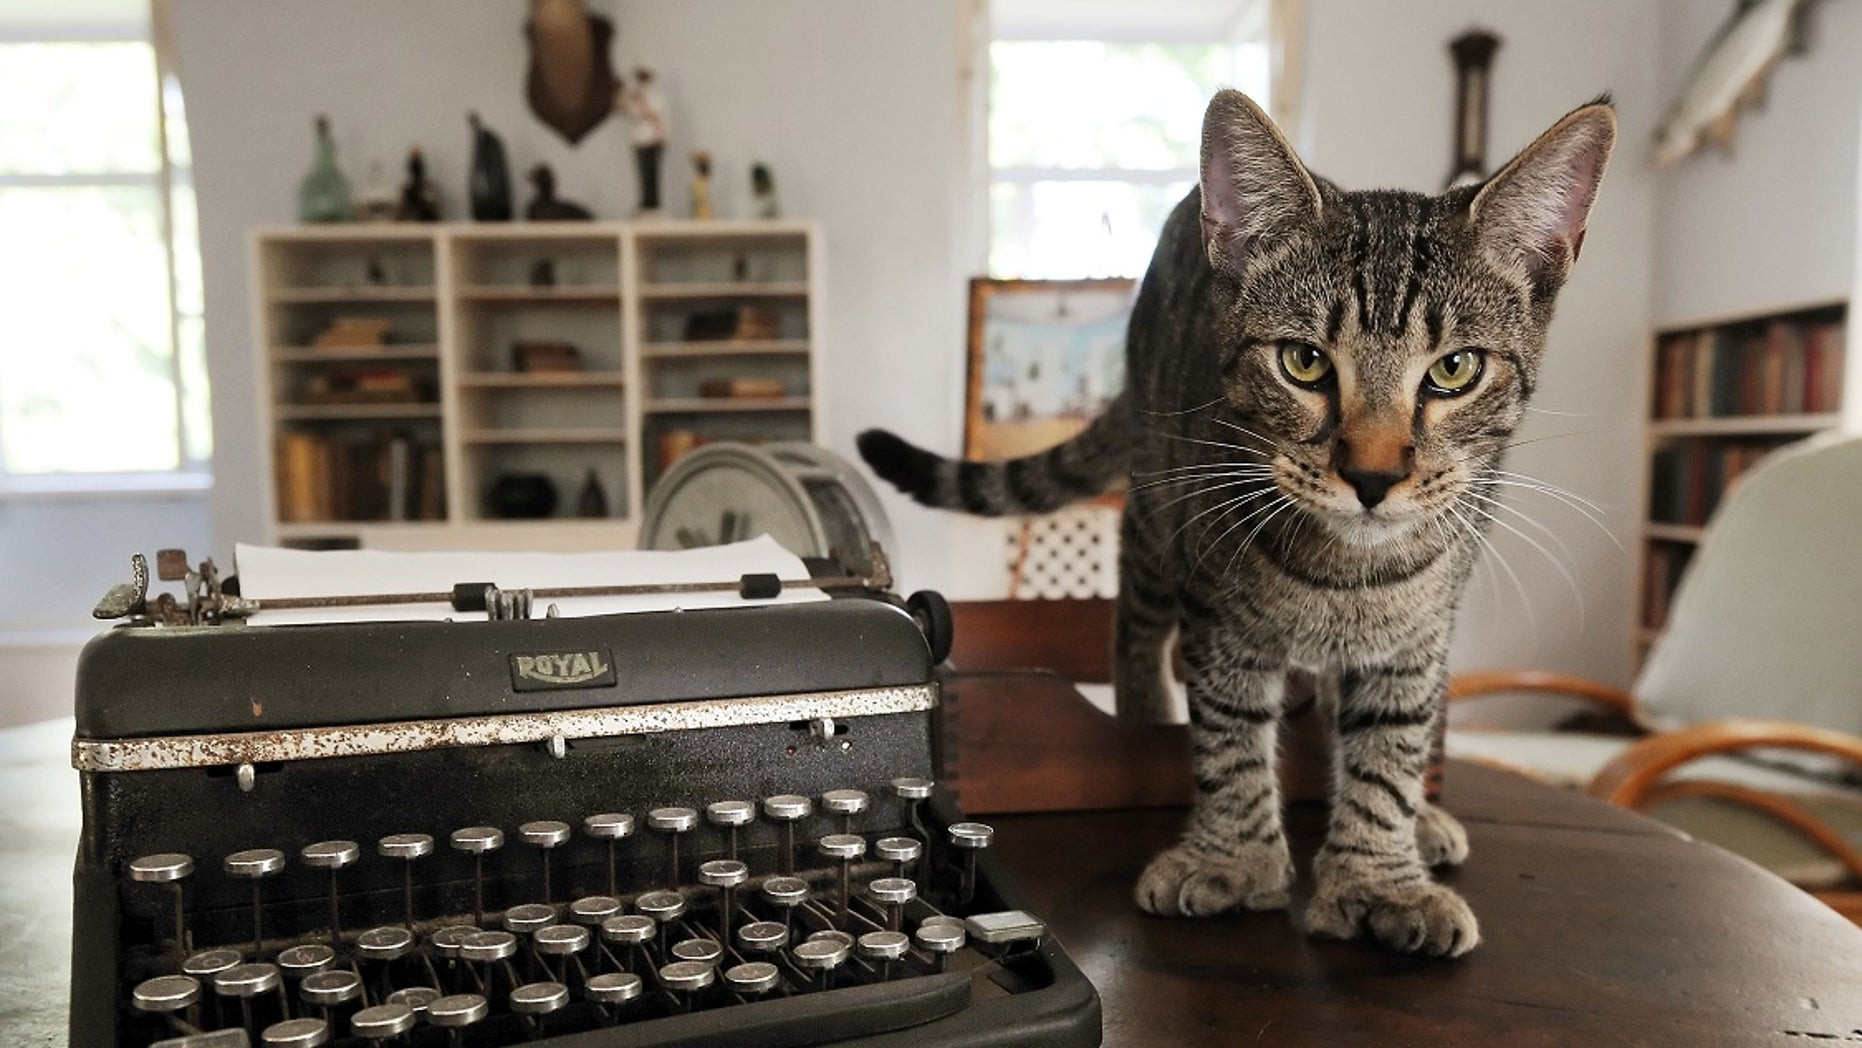 Six-toed cats that wander the Hemingway Home and Museum, many of which are descendants of Hemingway's beloved polydactyl feline friends.